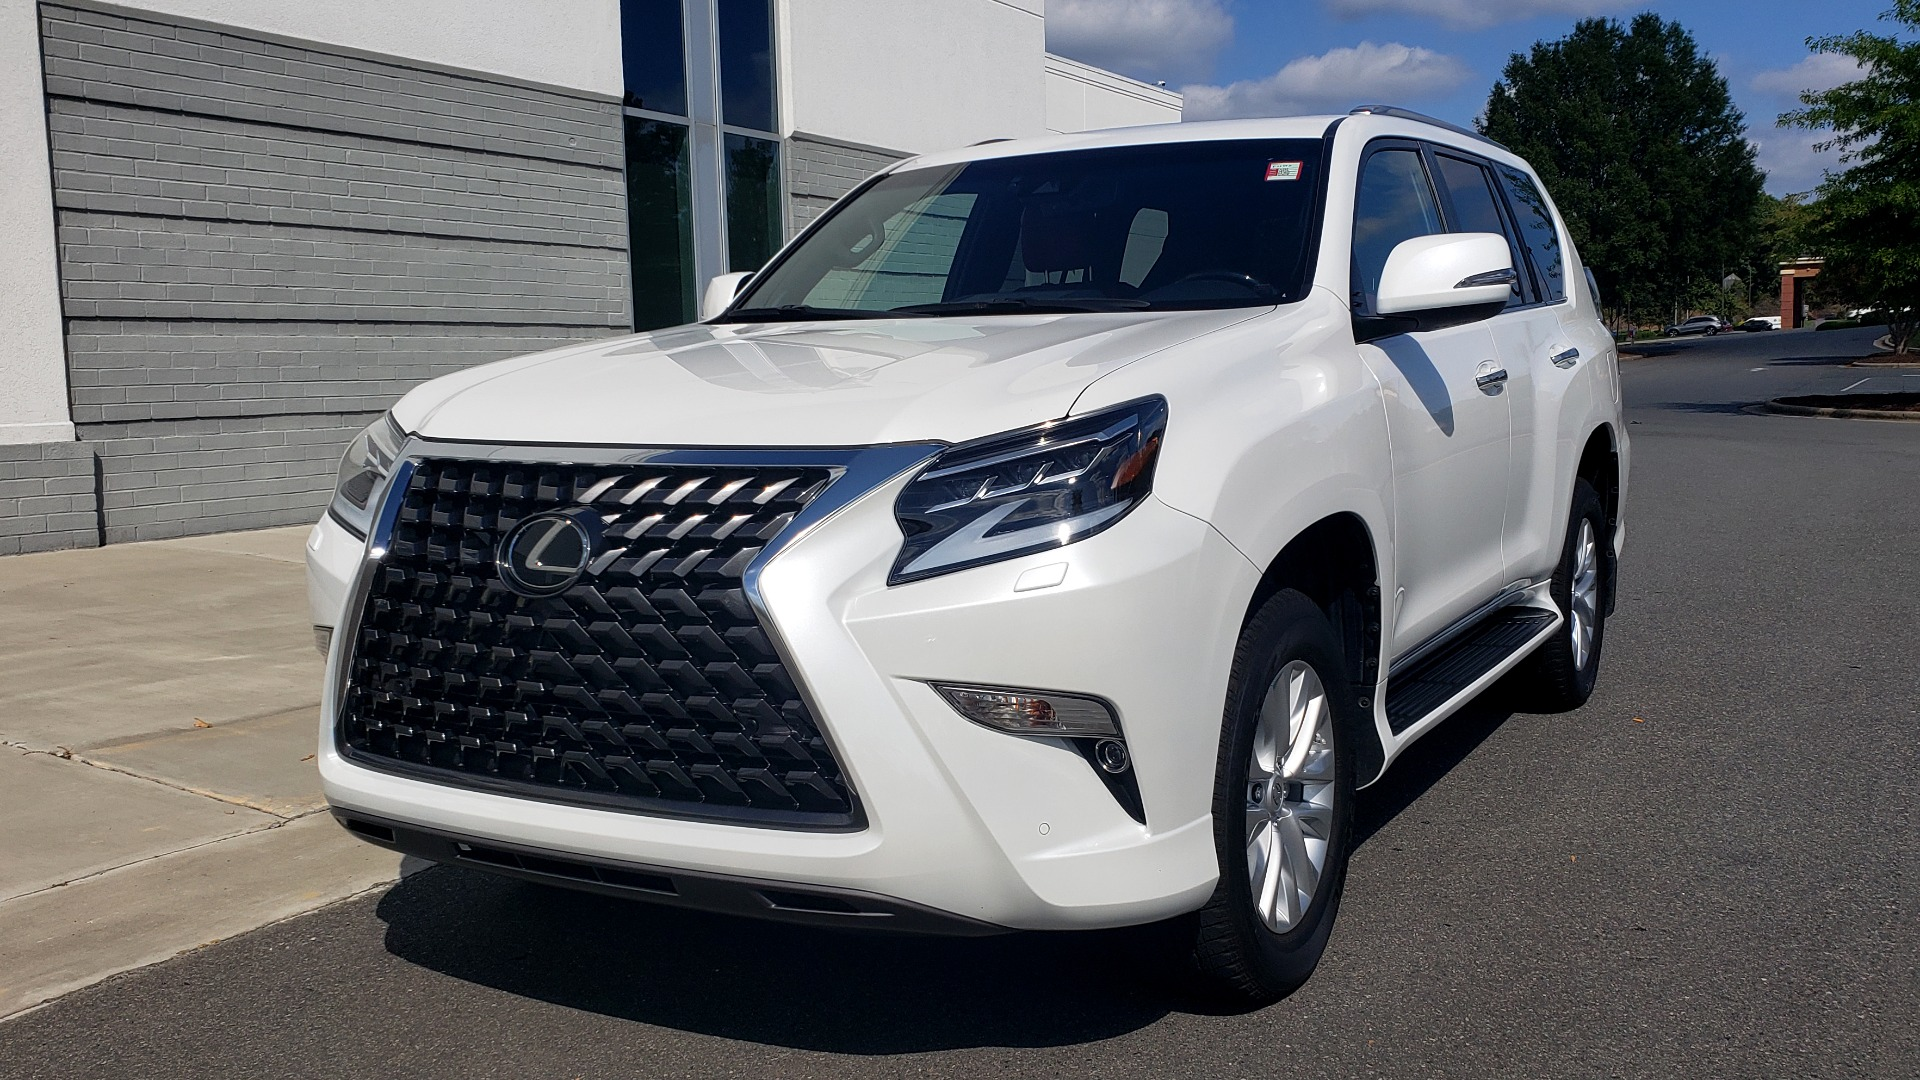 Used 2021 Lexus GX 460 PREMIUM / AWD / NAV / SUNROOF / 3-ROW / REARVIEW for sale Sold at Formula Imports in Charlotte NC 28227 2